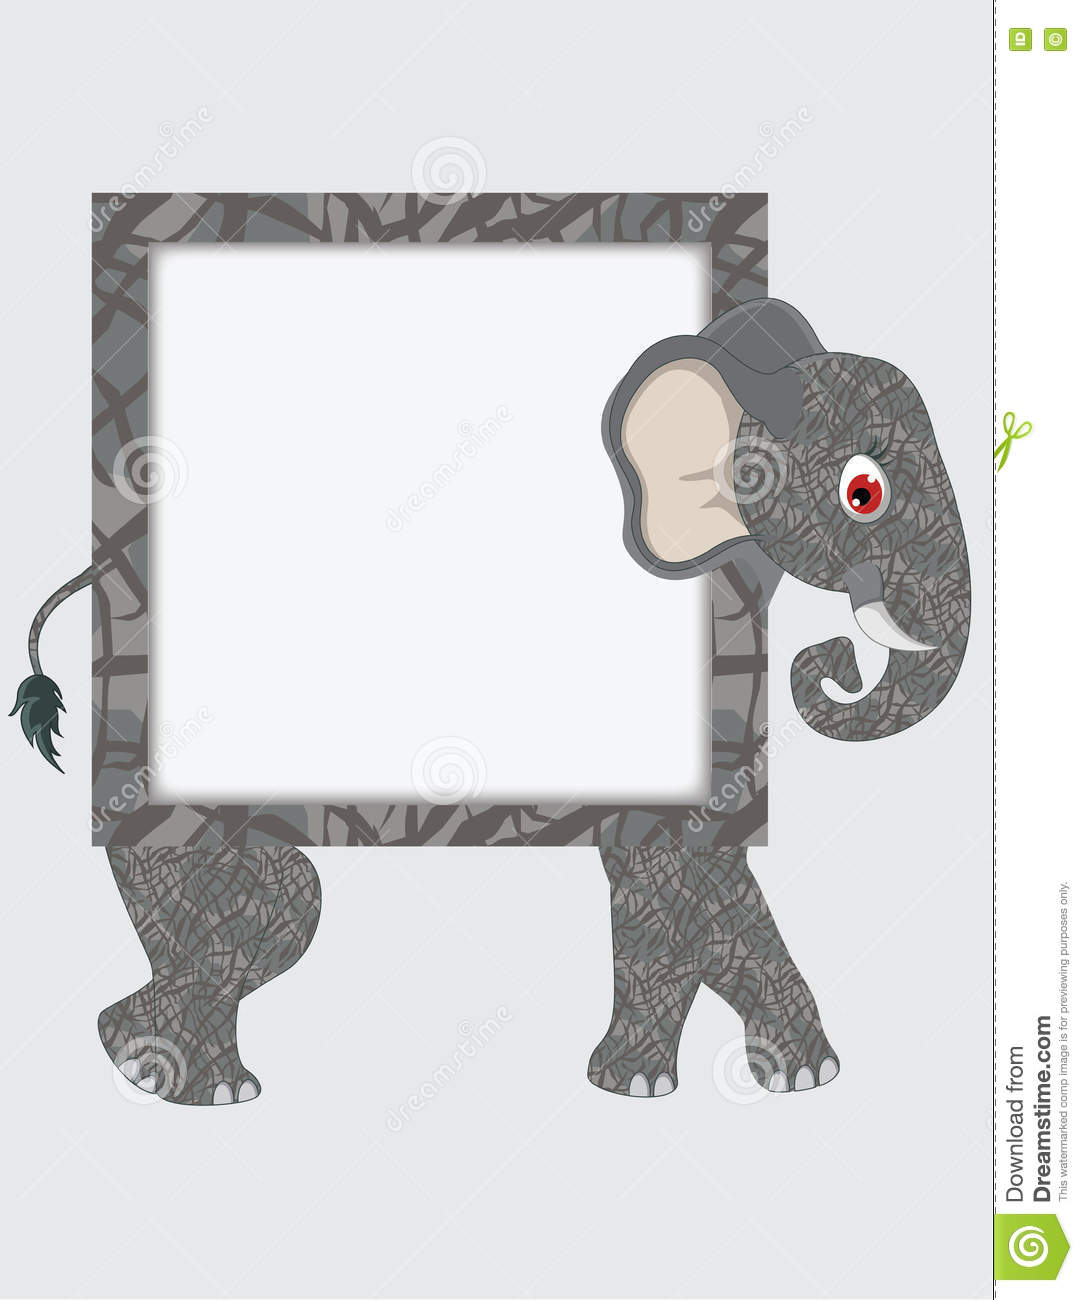 Cartoon elephant frame stock vector. Illustration of character ...